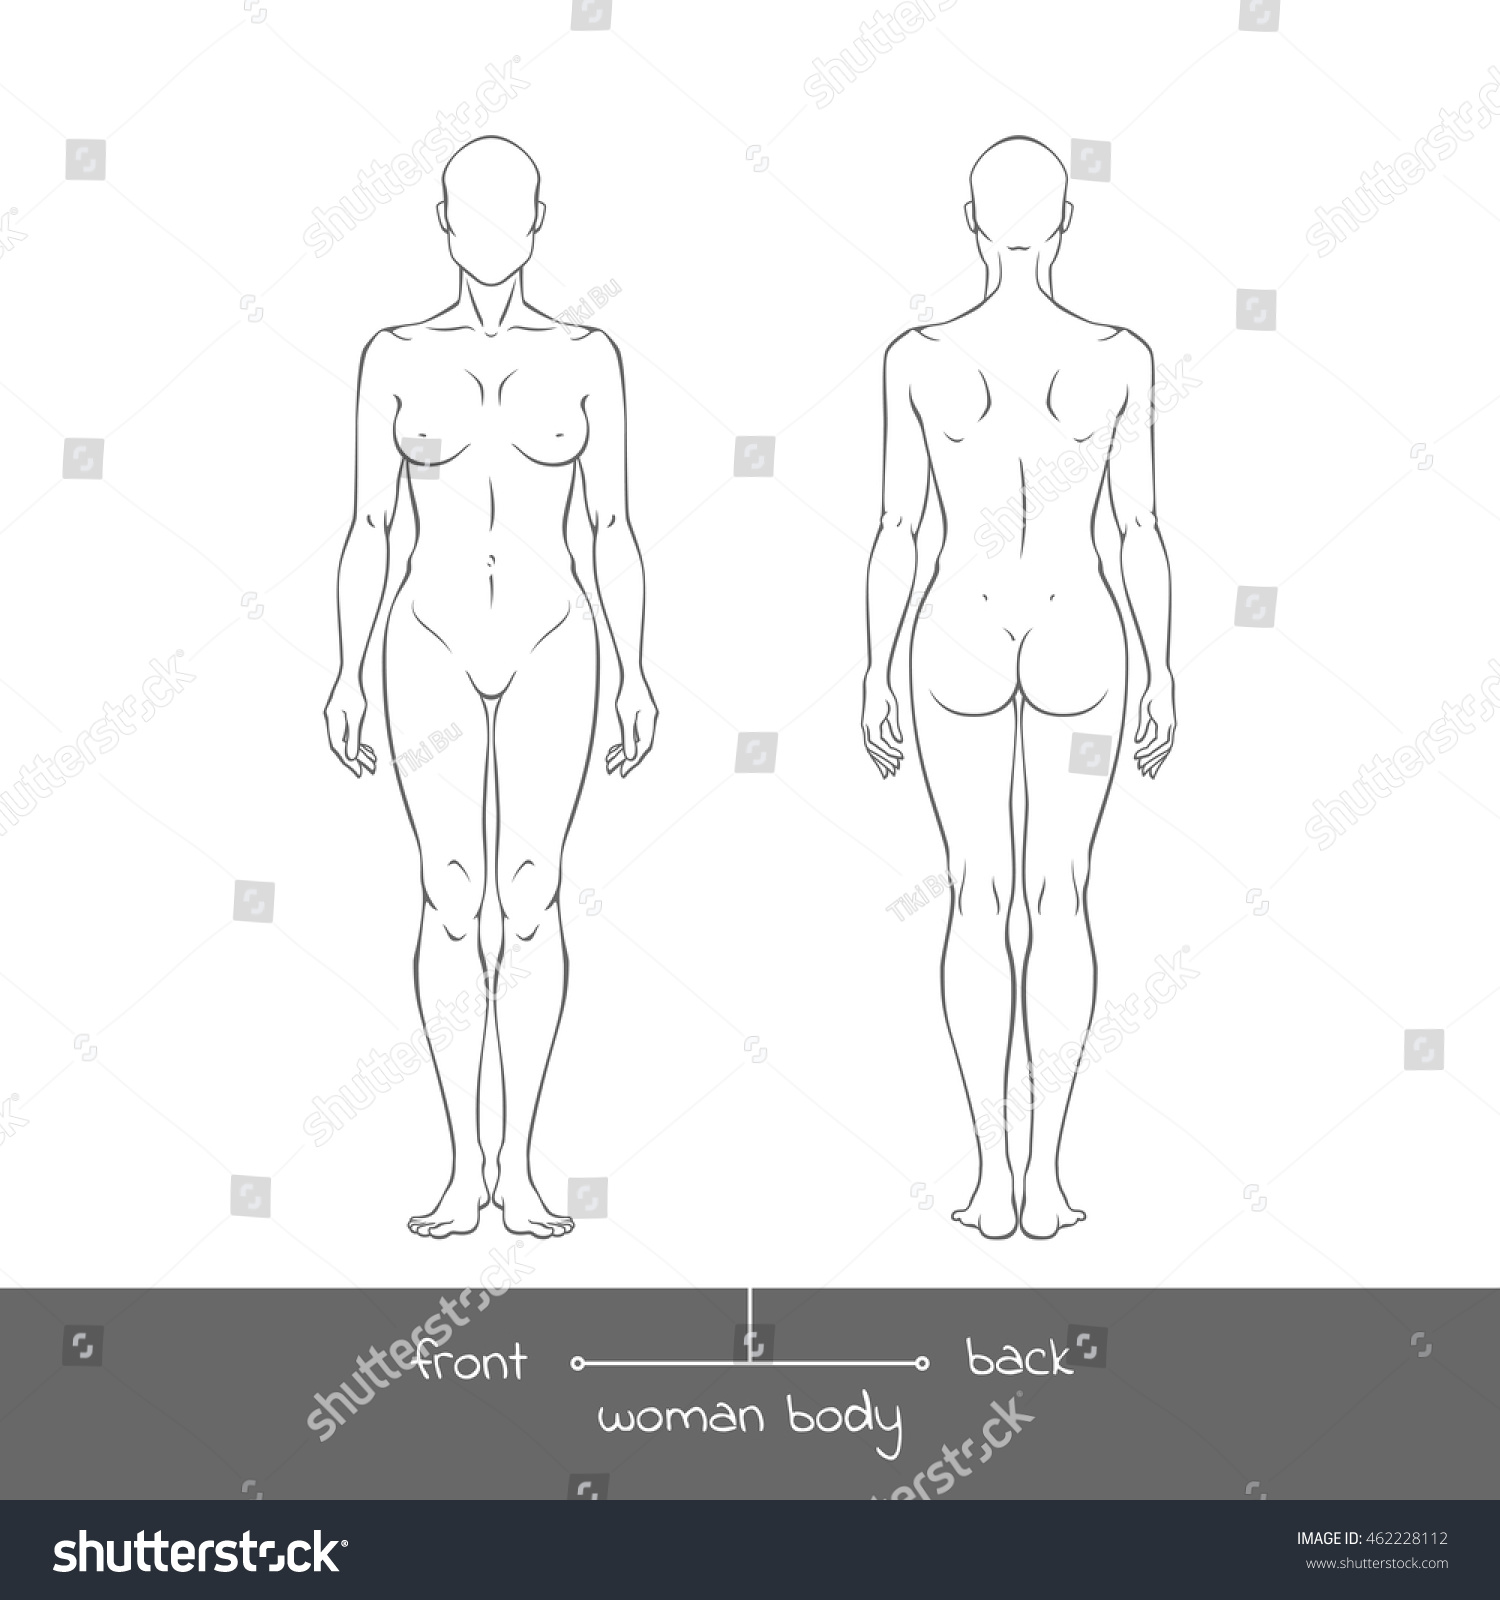 dab389737 Muscular young woman from front and back view. Anatomy of Healthy female  body shapes outline vector illustration with the inscription  front and  back. Human ...